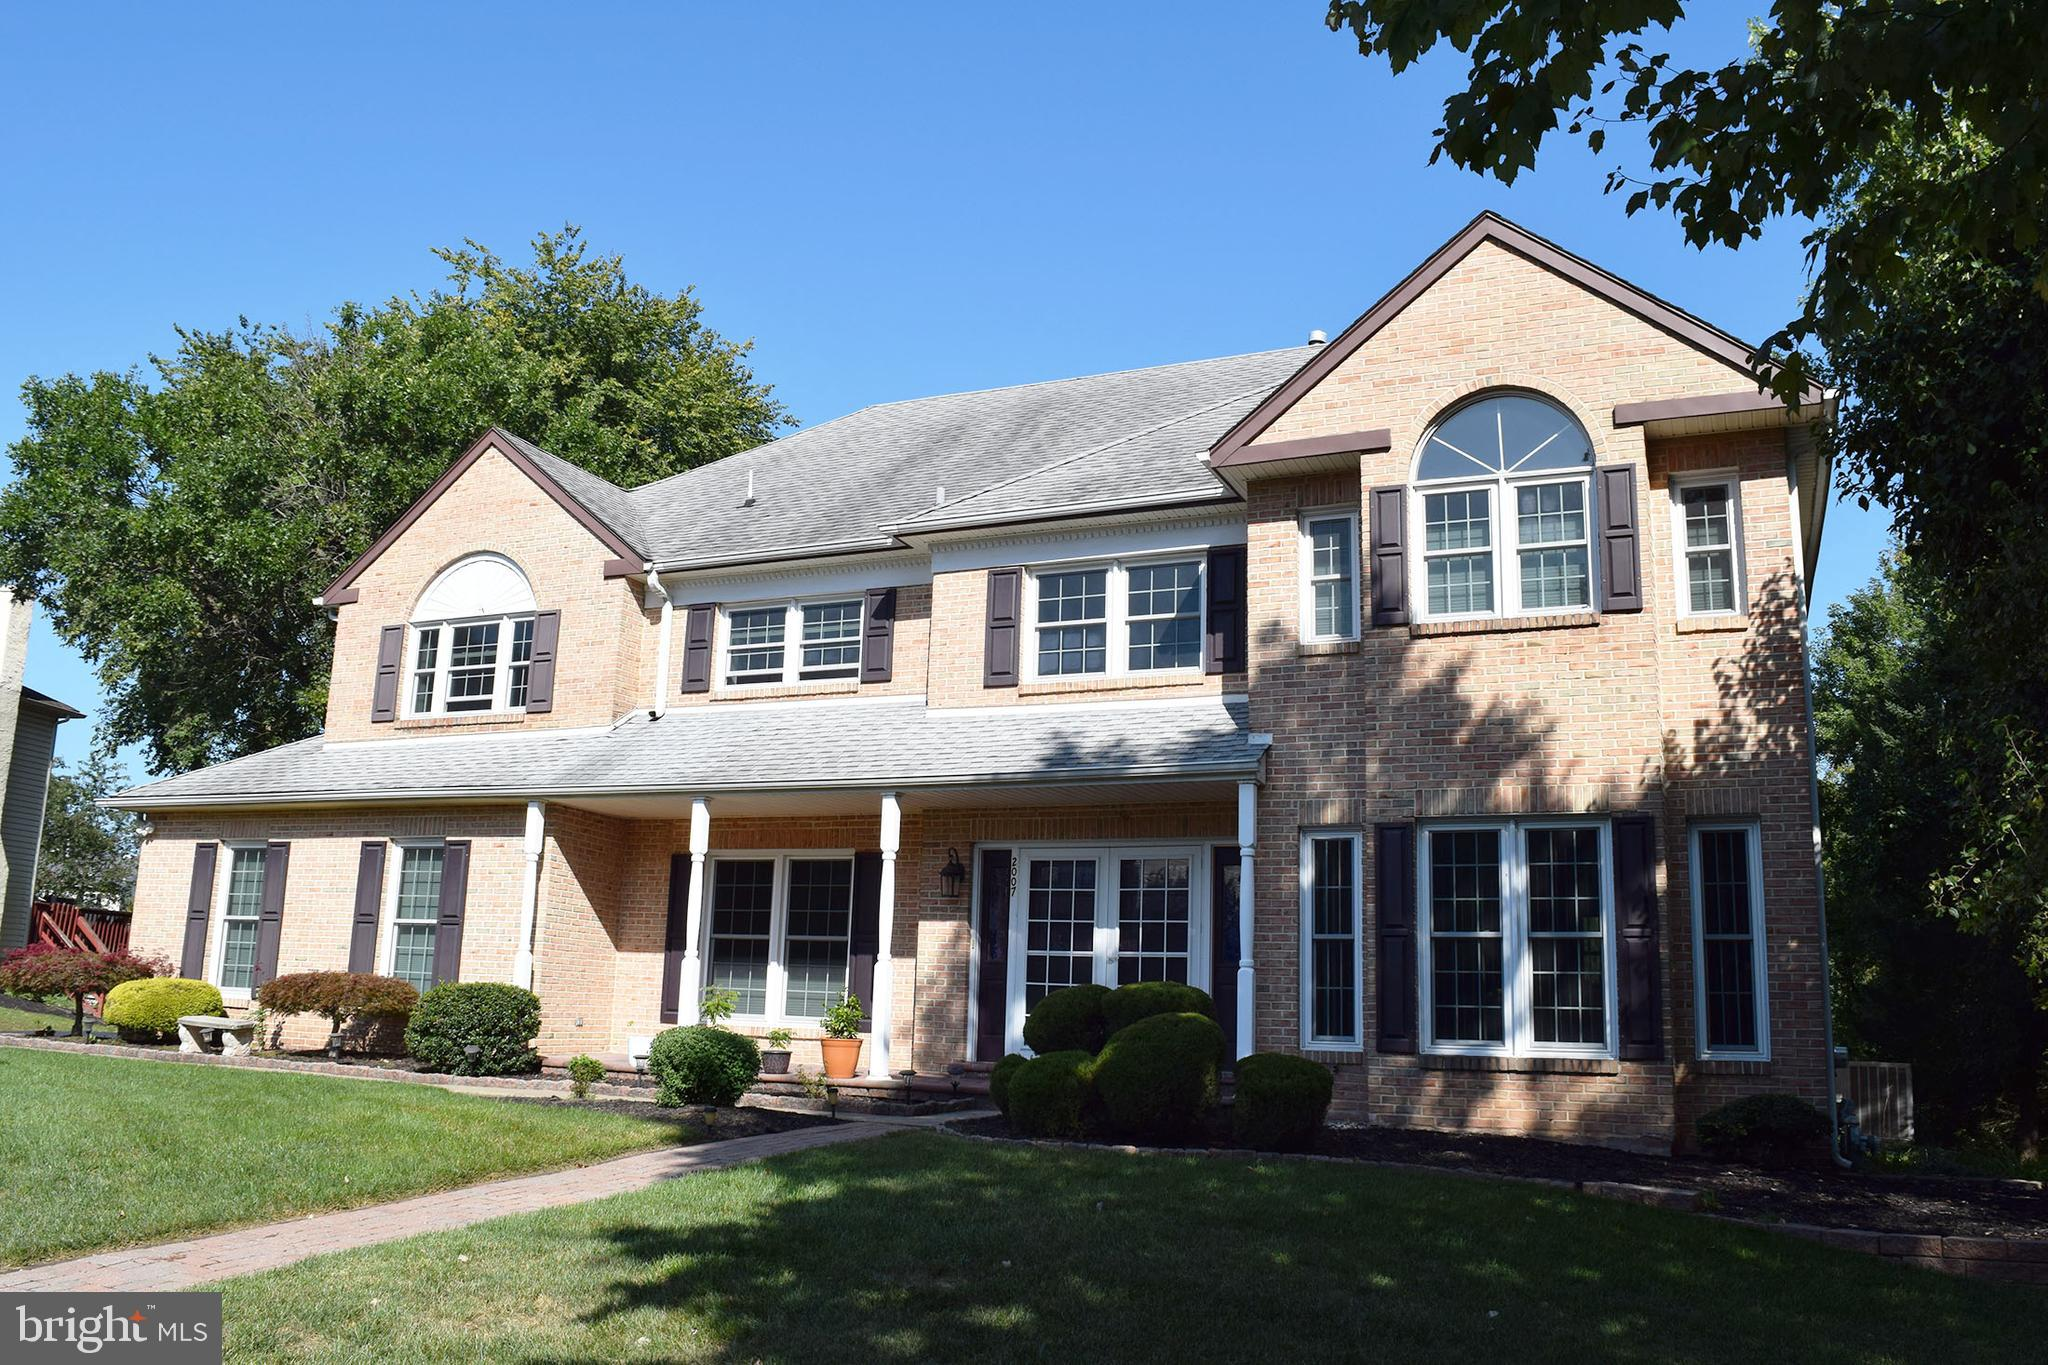 2007 Country Club Drive, Doylestown, PA 18901